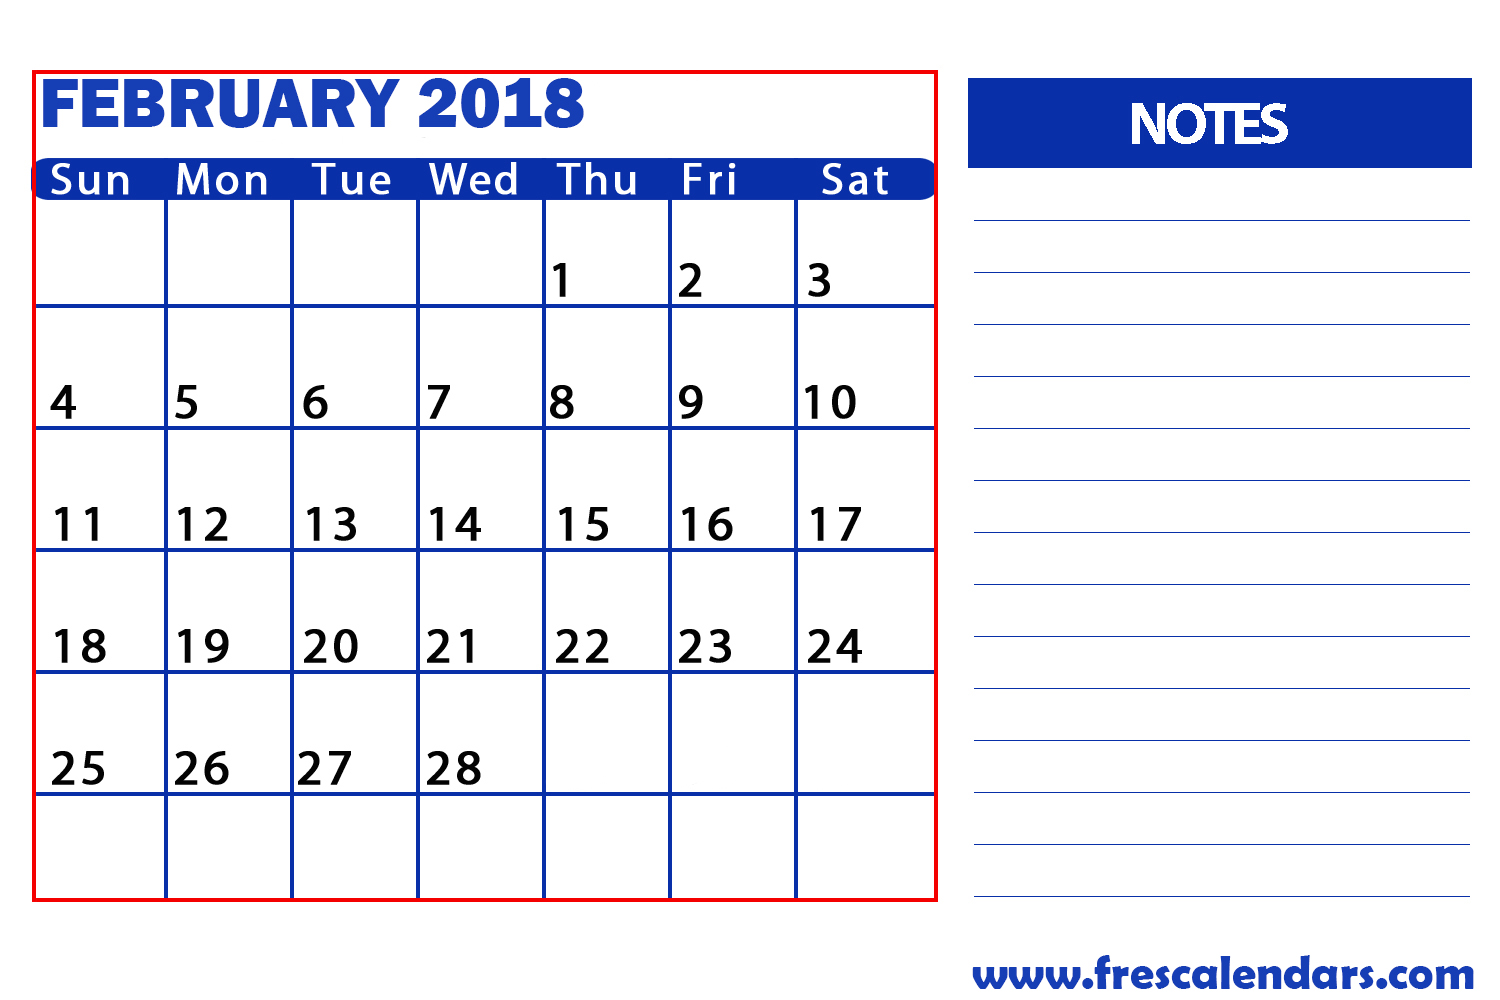 February Calendar With Notes Space Free Images At Clker